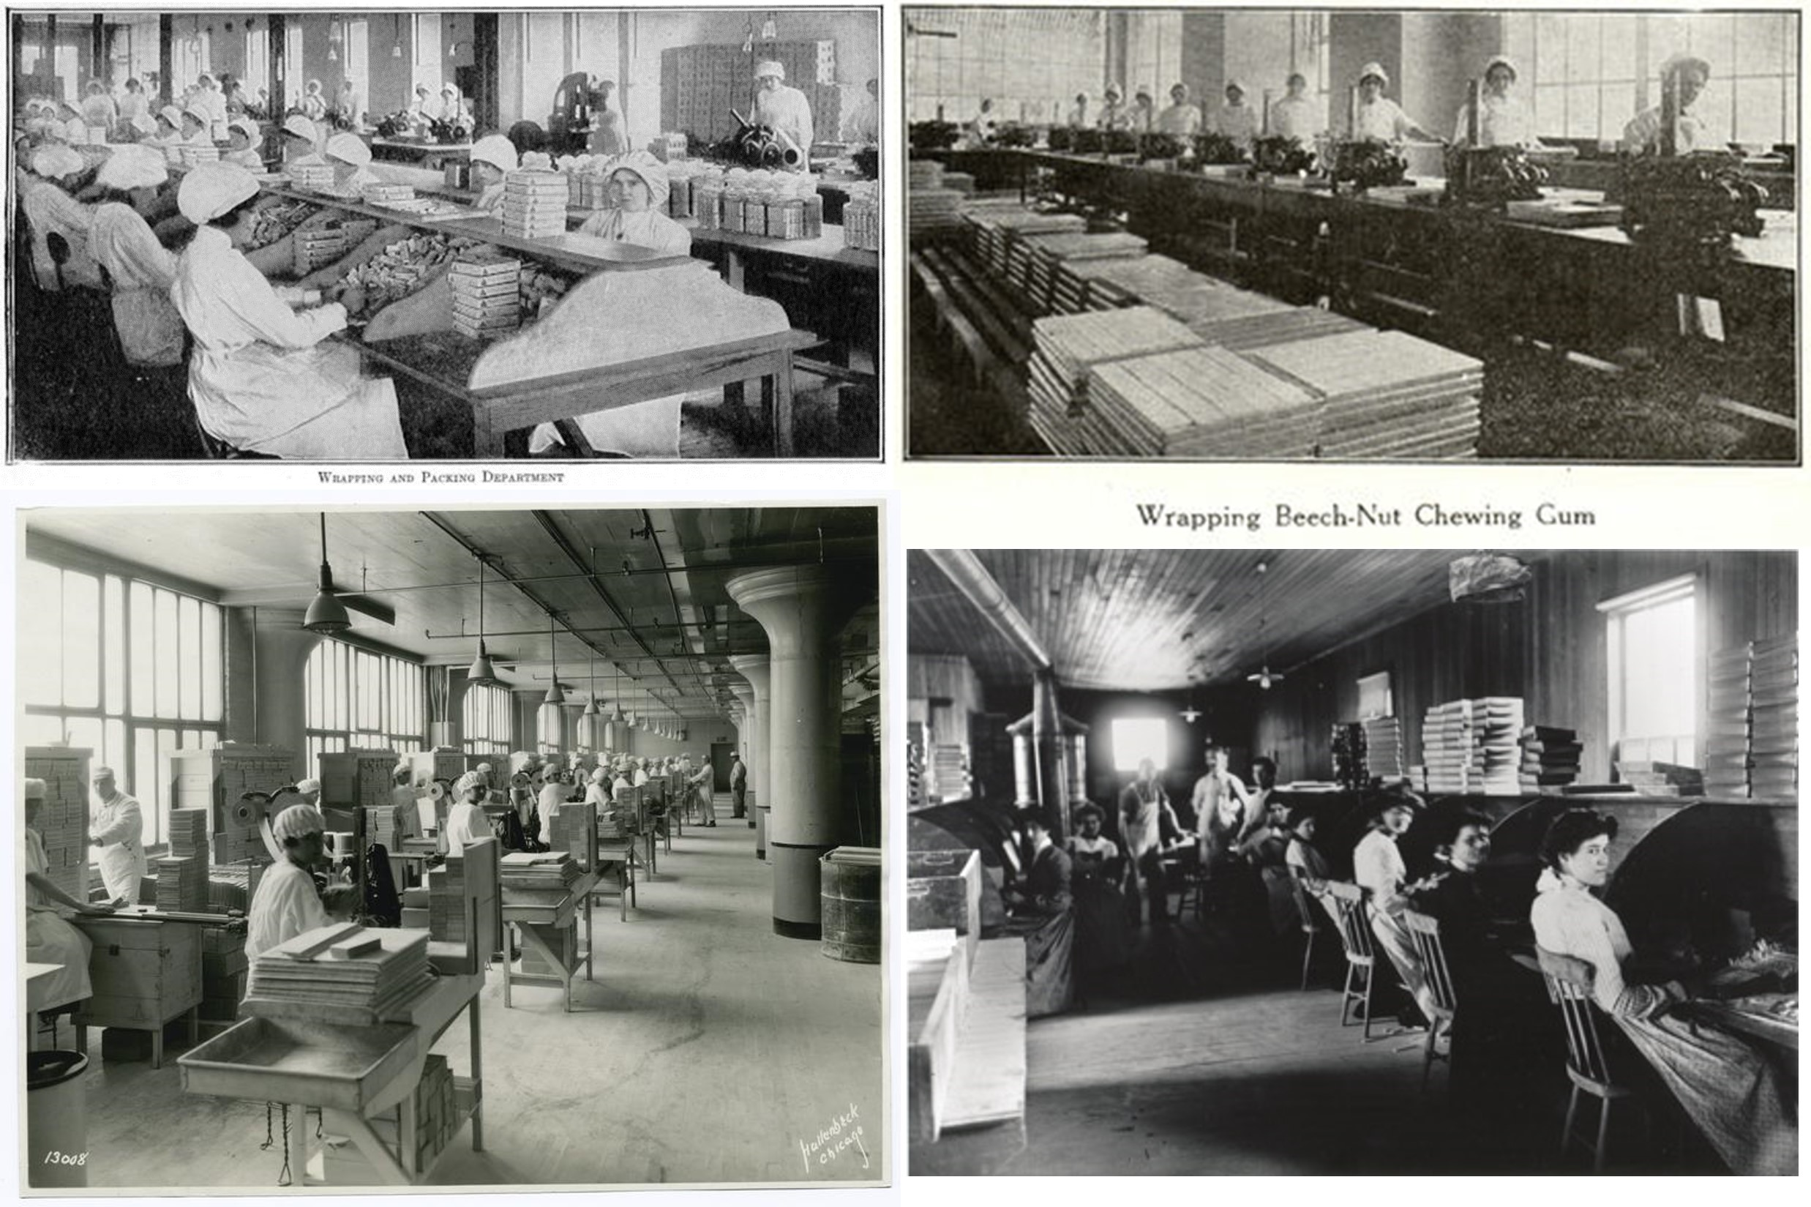 The Chicle-Chewing Gum industry served as a unique factory setting because both men and women could work there. Entire industries were developed and manned by women producing the boxed and labelled end product, with men working in other rooms manufacturing the gum pieces and ribbons from raw chicle.  See http://brianaltonenmph.com/then-and-now/chicle-the-history-of-chewing-gum/.